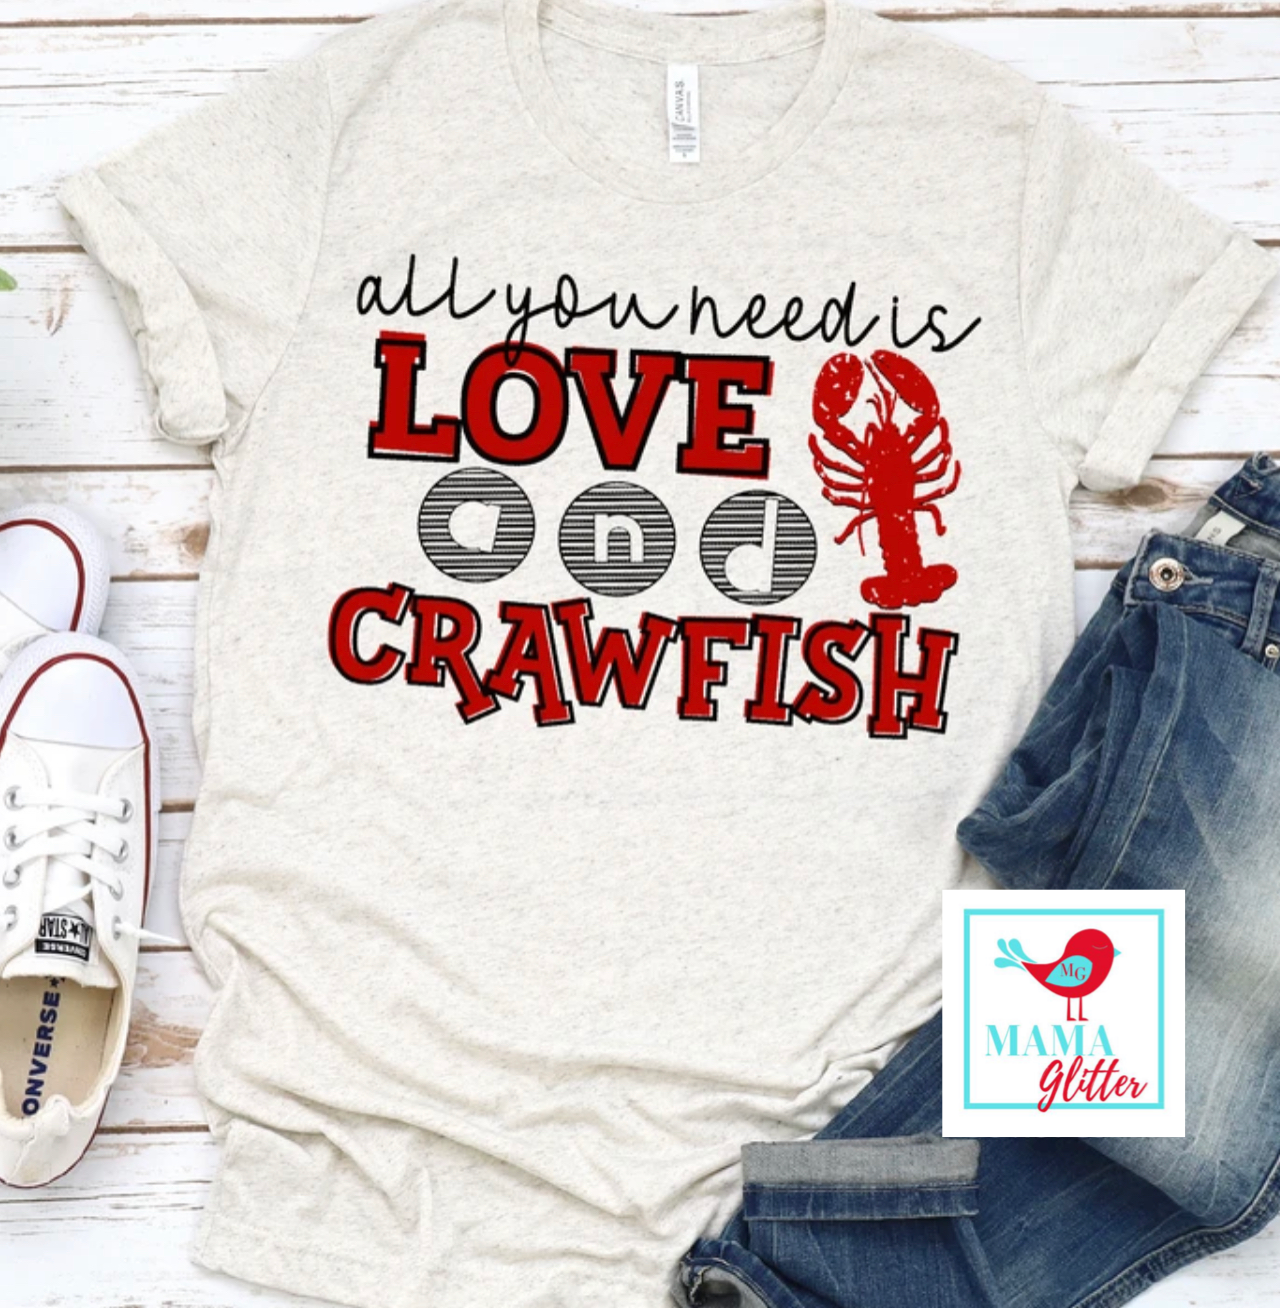 All You Need Is Love And Crawfish